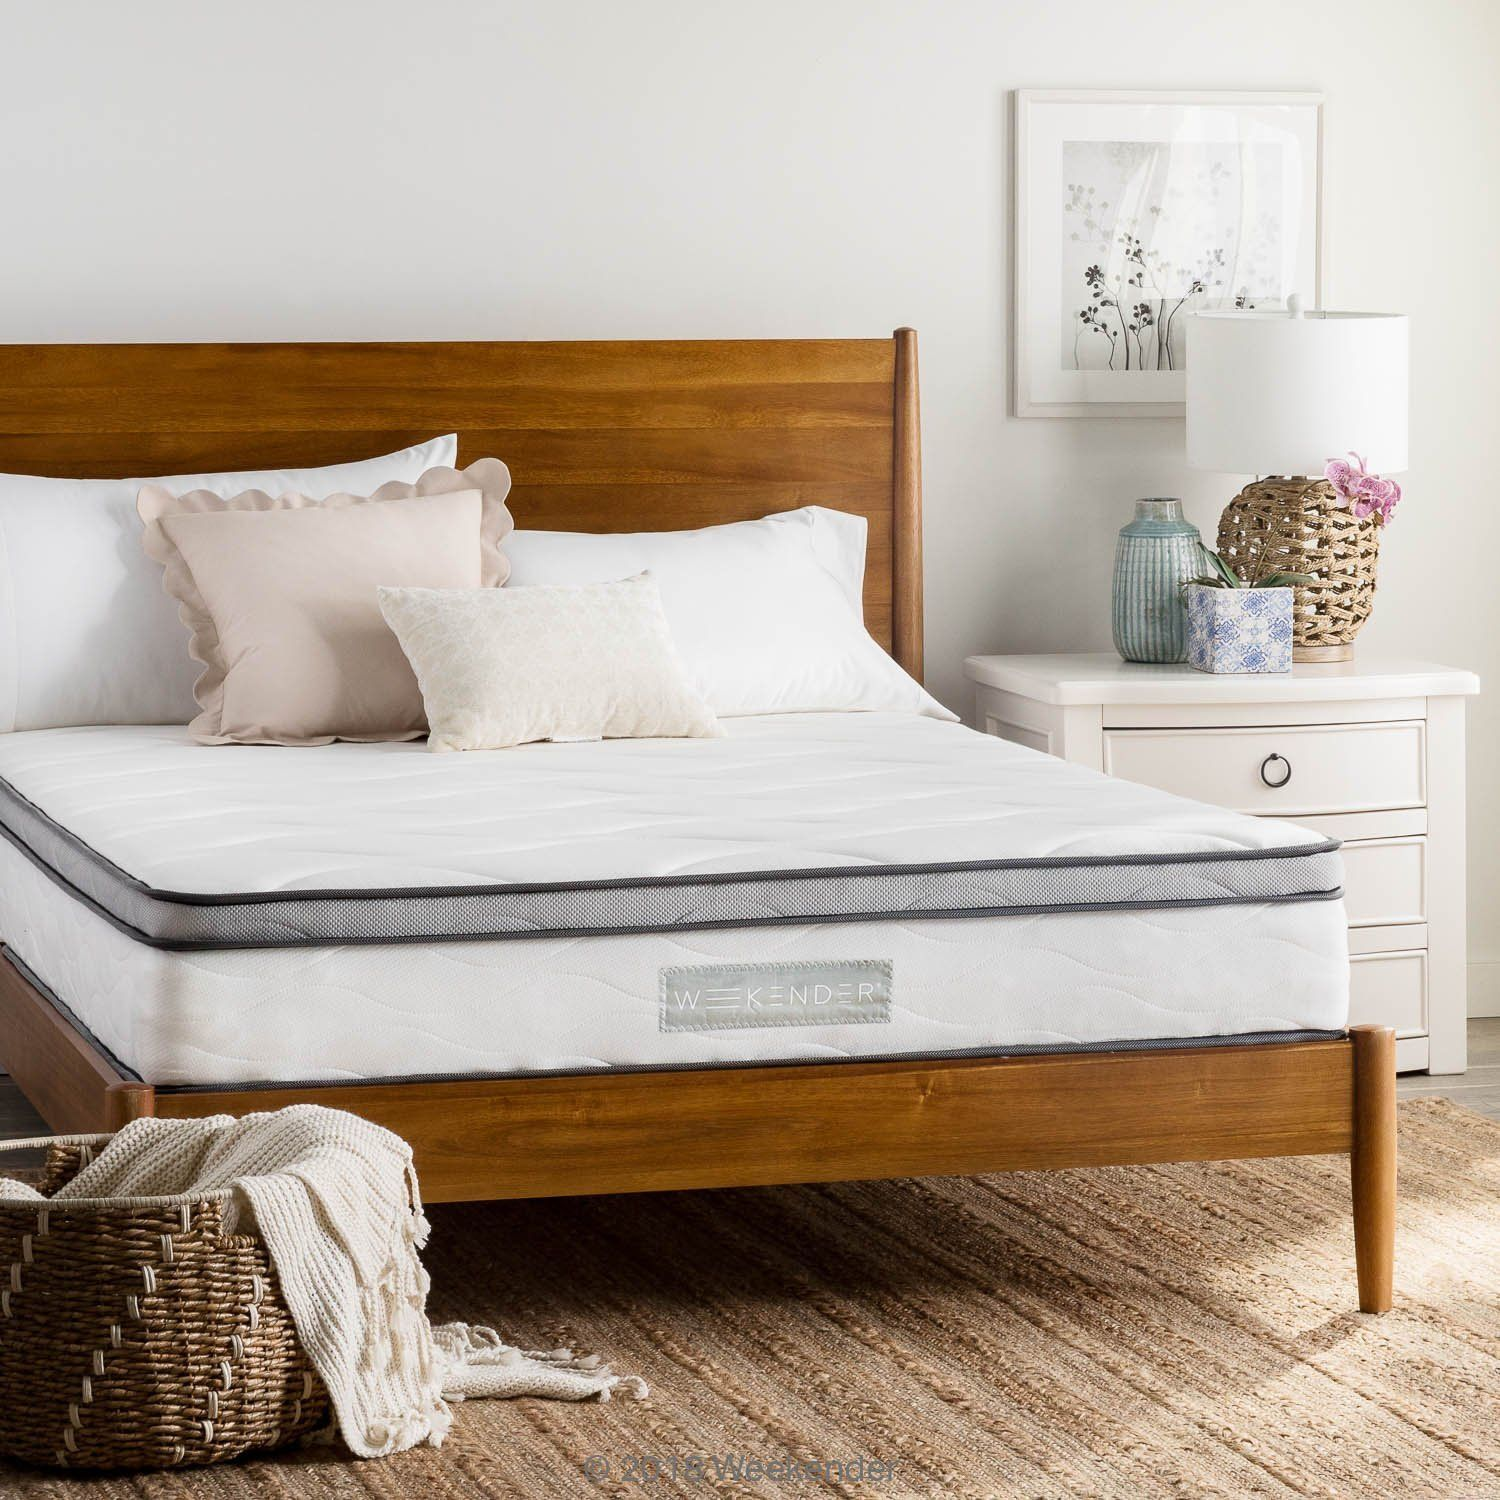 Best Memory Foam Mattresses Mattress, Hybrid mattress